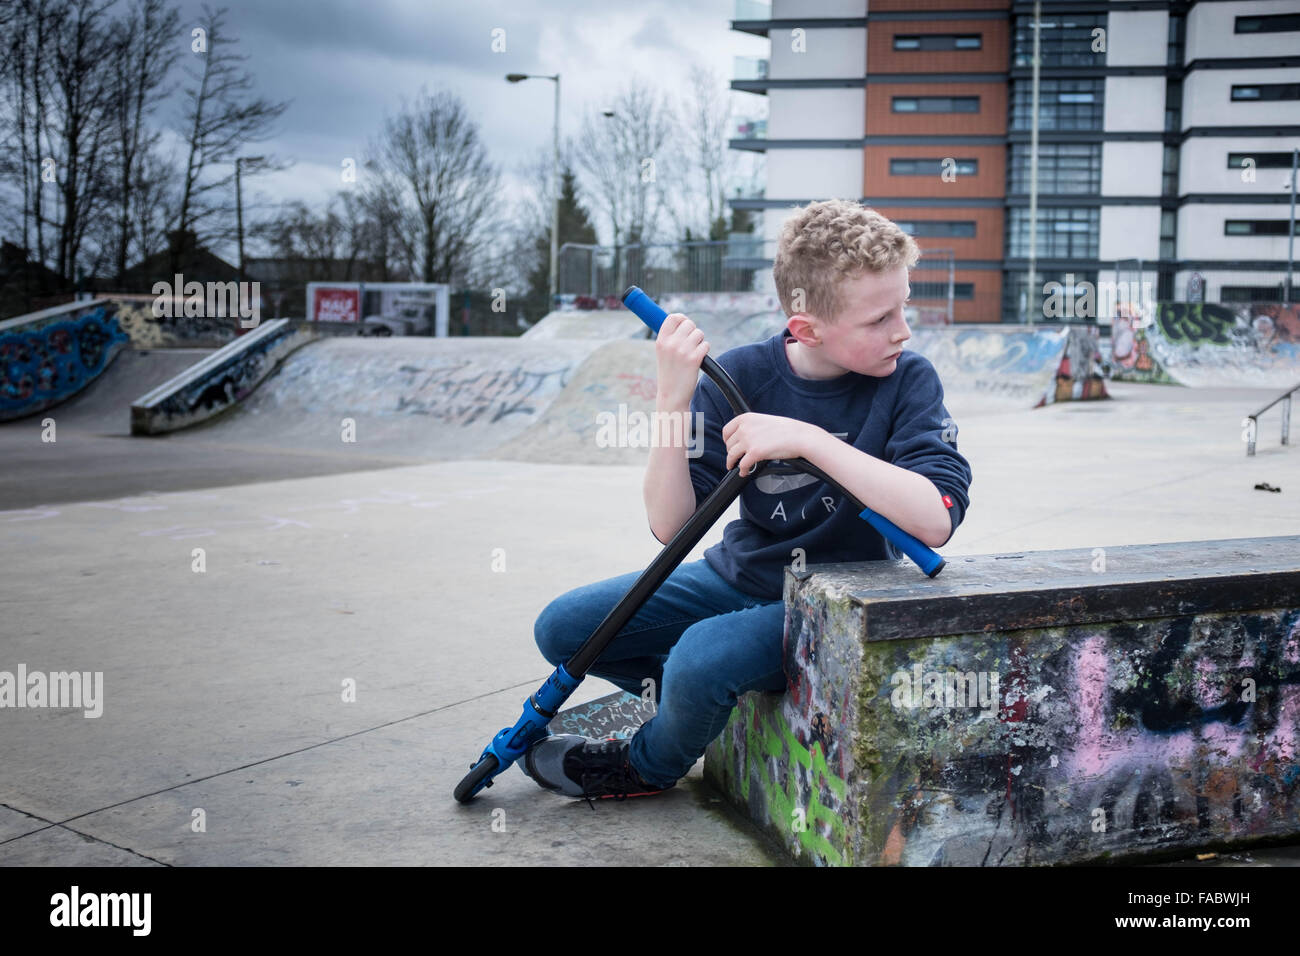 Young, blonde 12 year old boy, alone looking pensive in an urban skate park environment - Stock Image